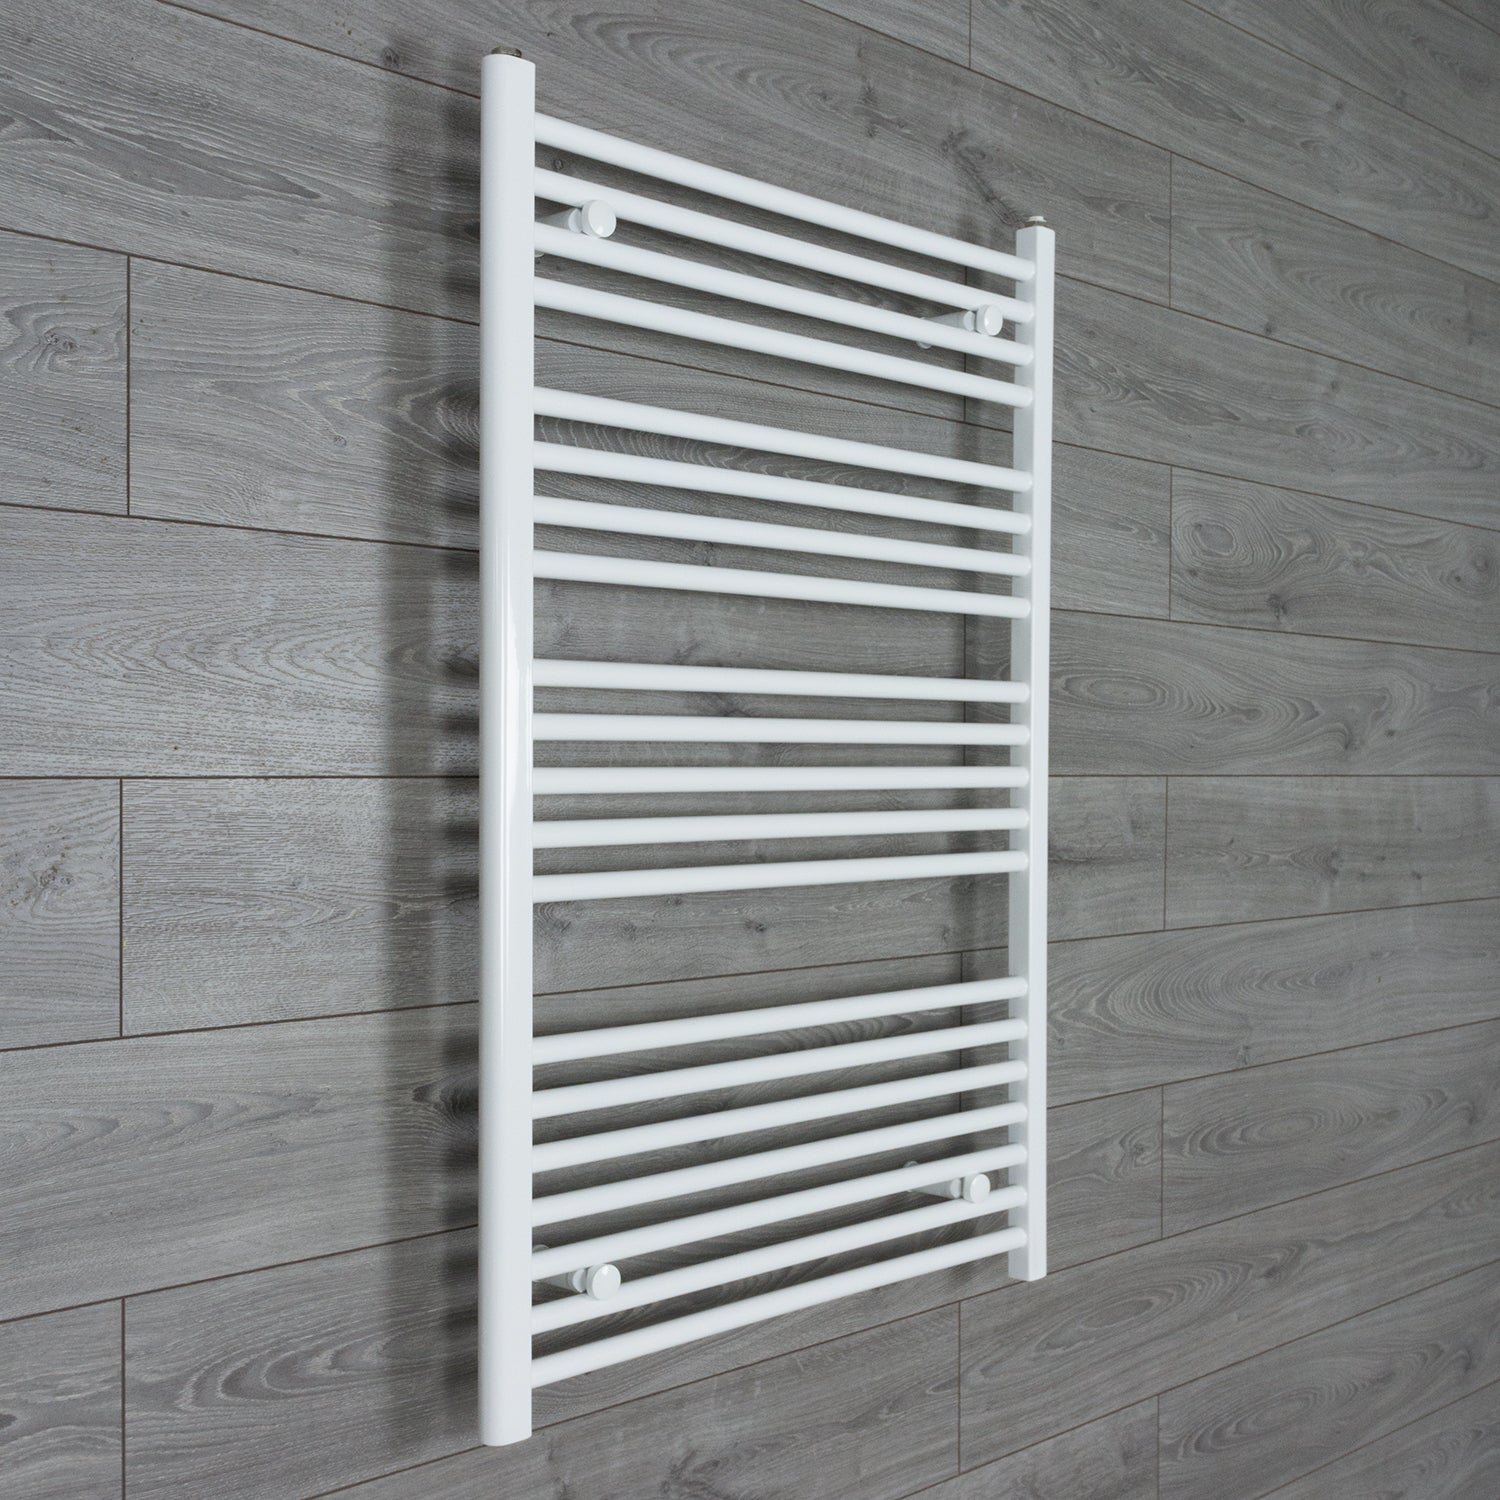 750mm Wide 1100mm High Flat White Heated Towel Rail Radiator HTR,Towel Rail Only